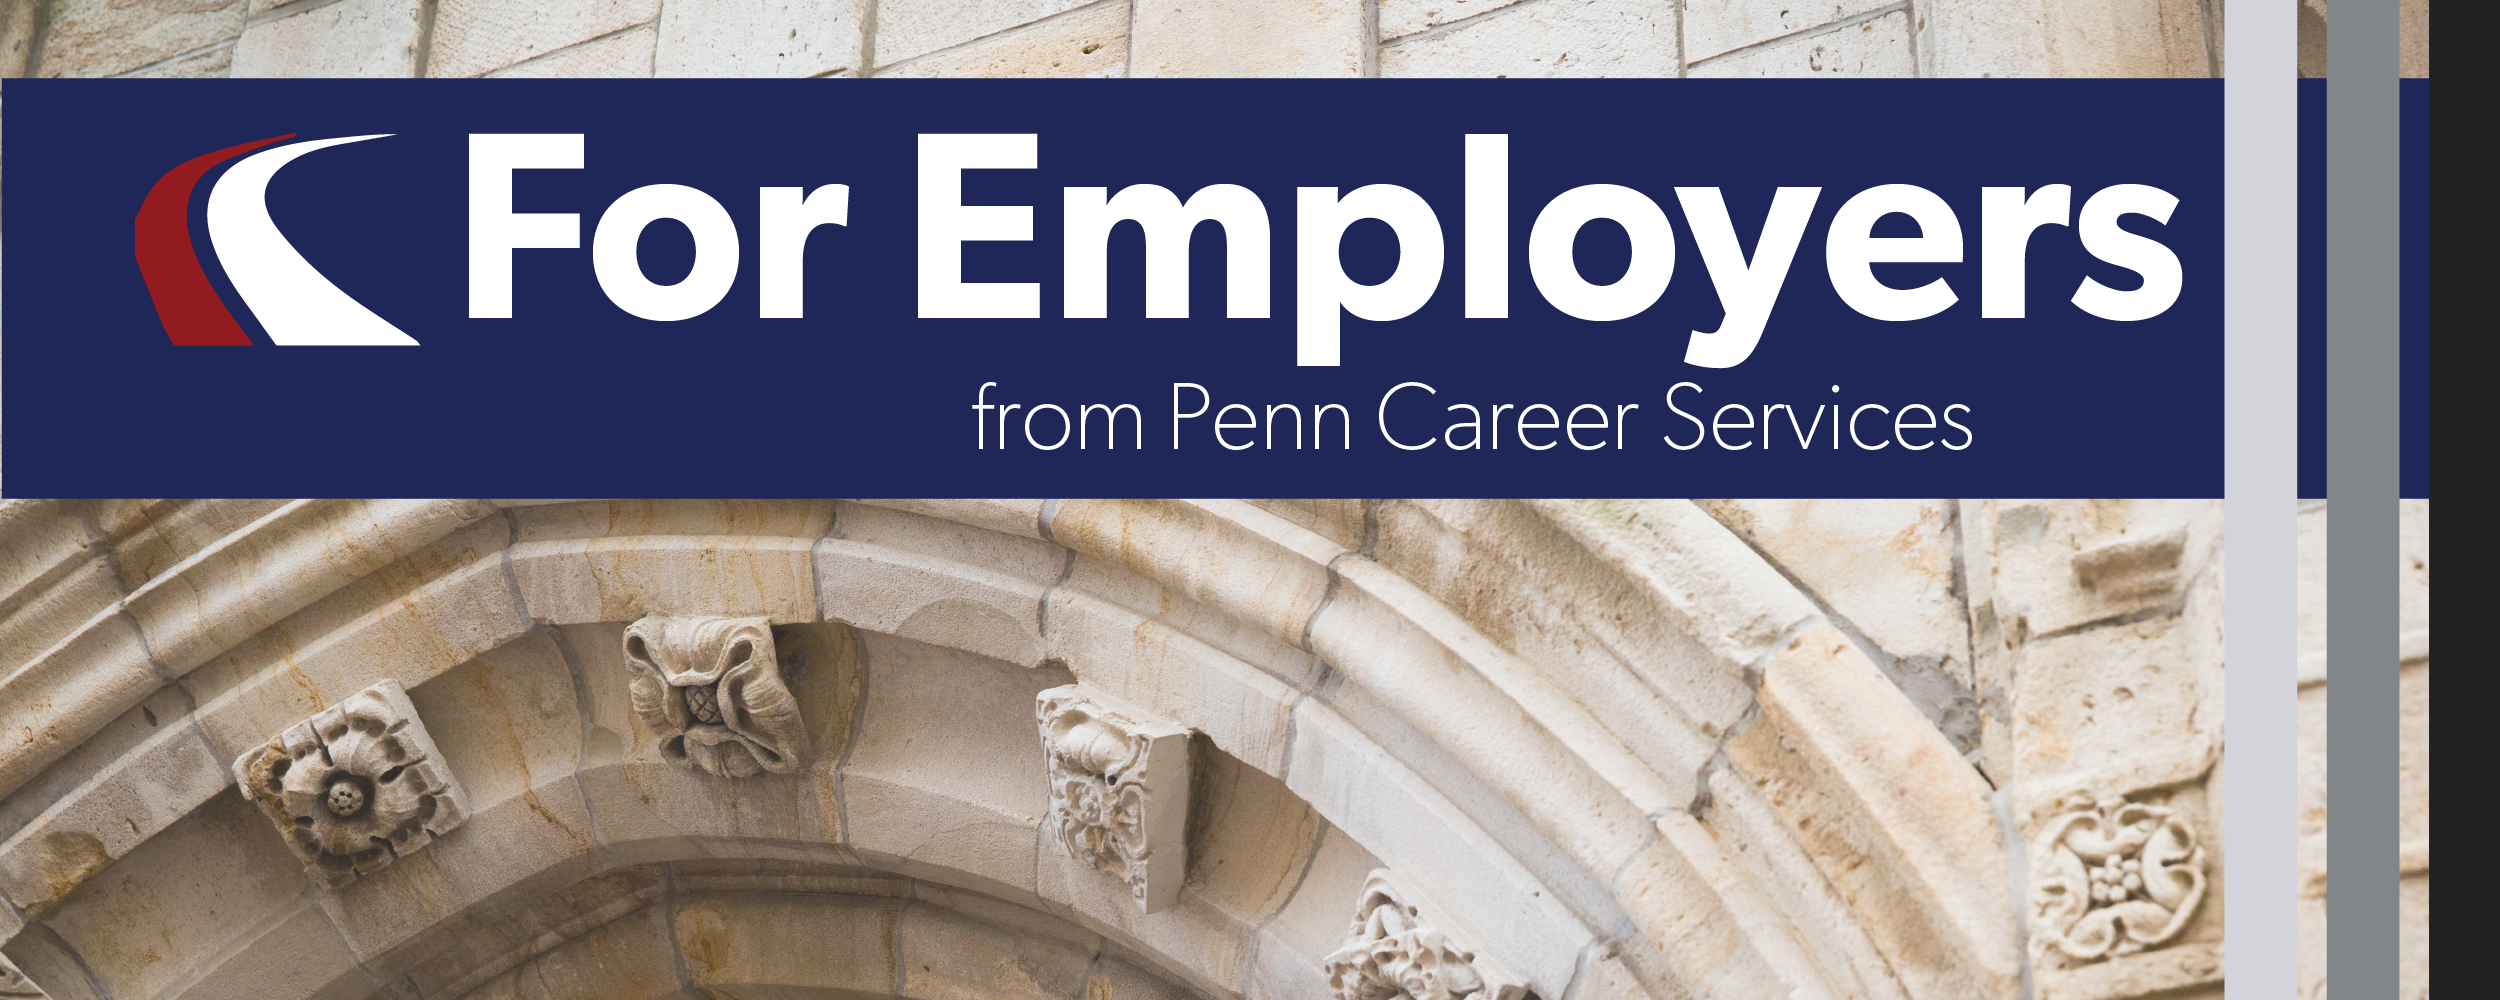 For Employers from Penn Career Services